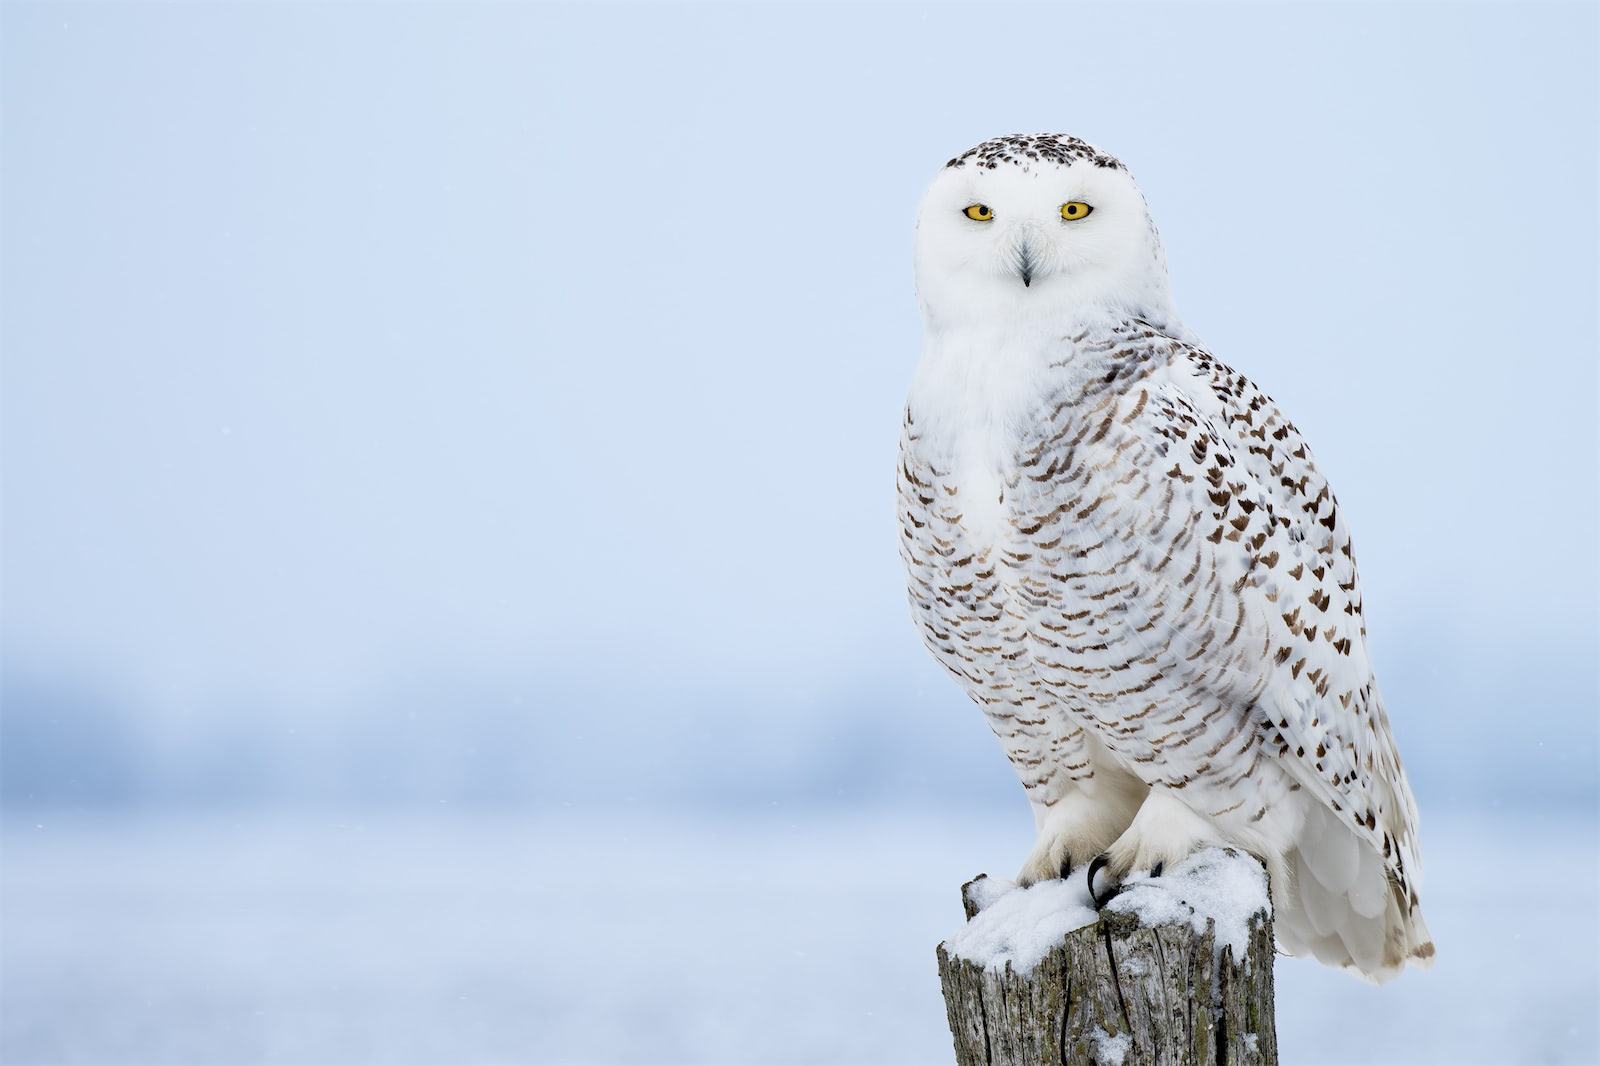 A perched snowy owl